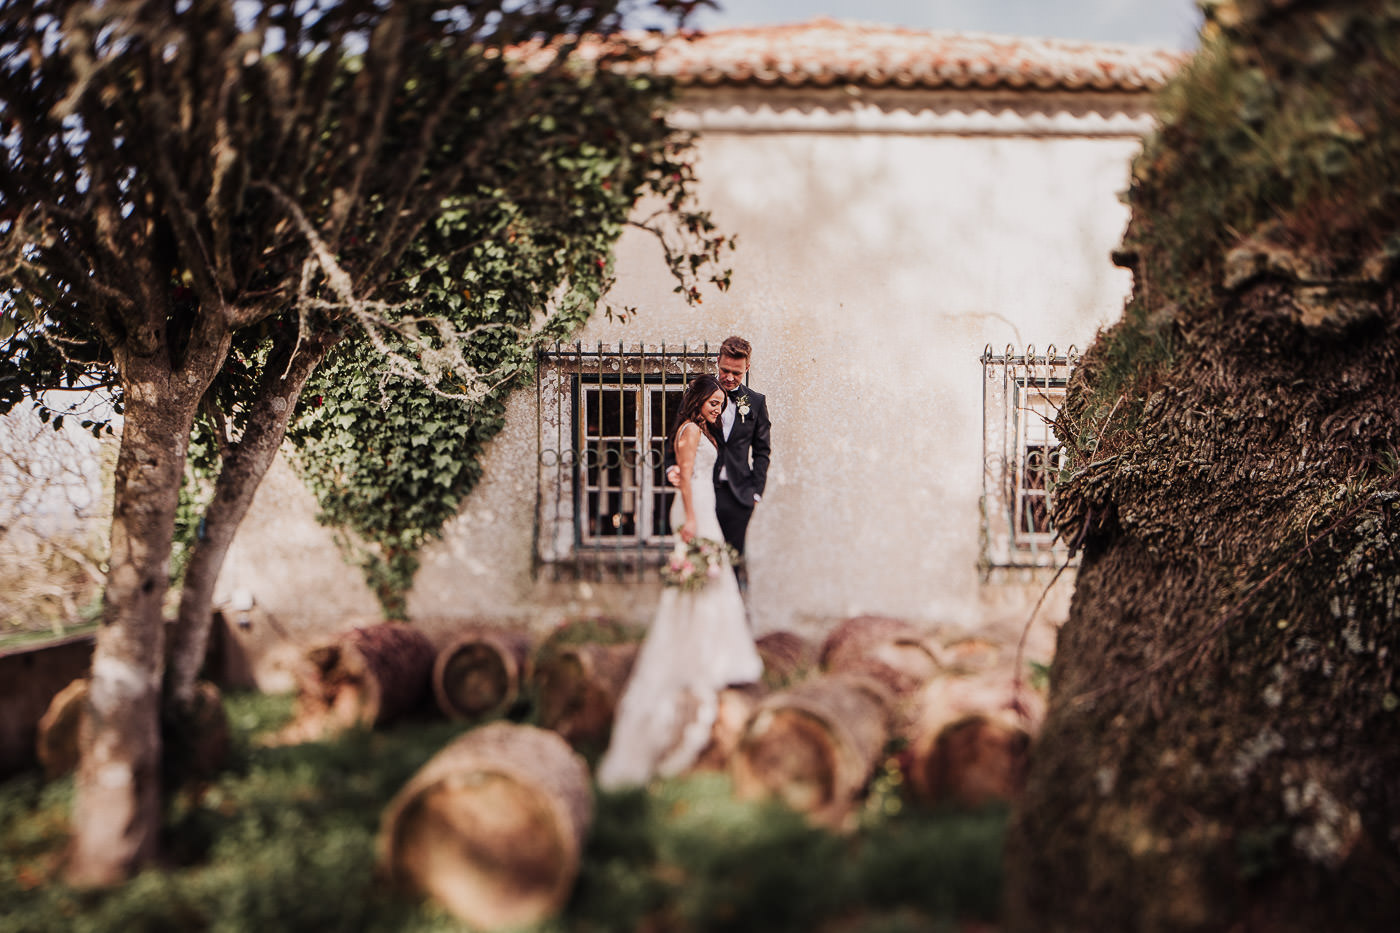 bride-groom_the-quinta-my-vintage-wedding-portugal_sintra_lisboa_lisbon_documentary-wedding-photography